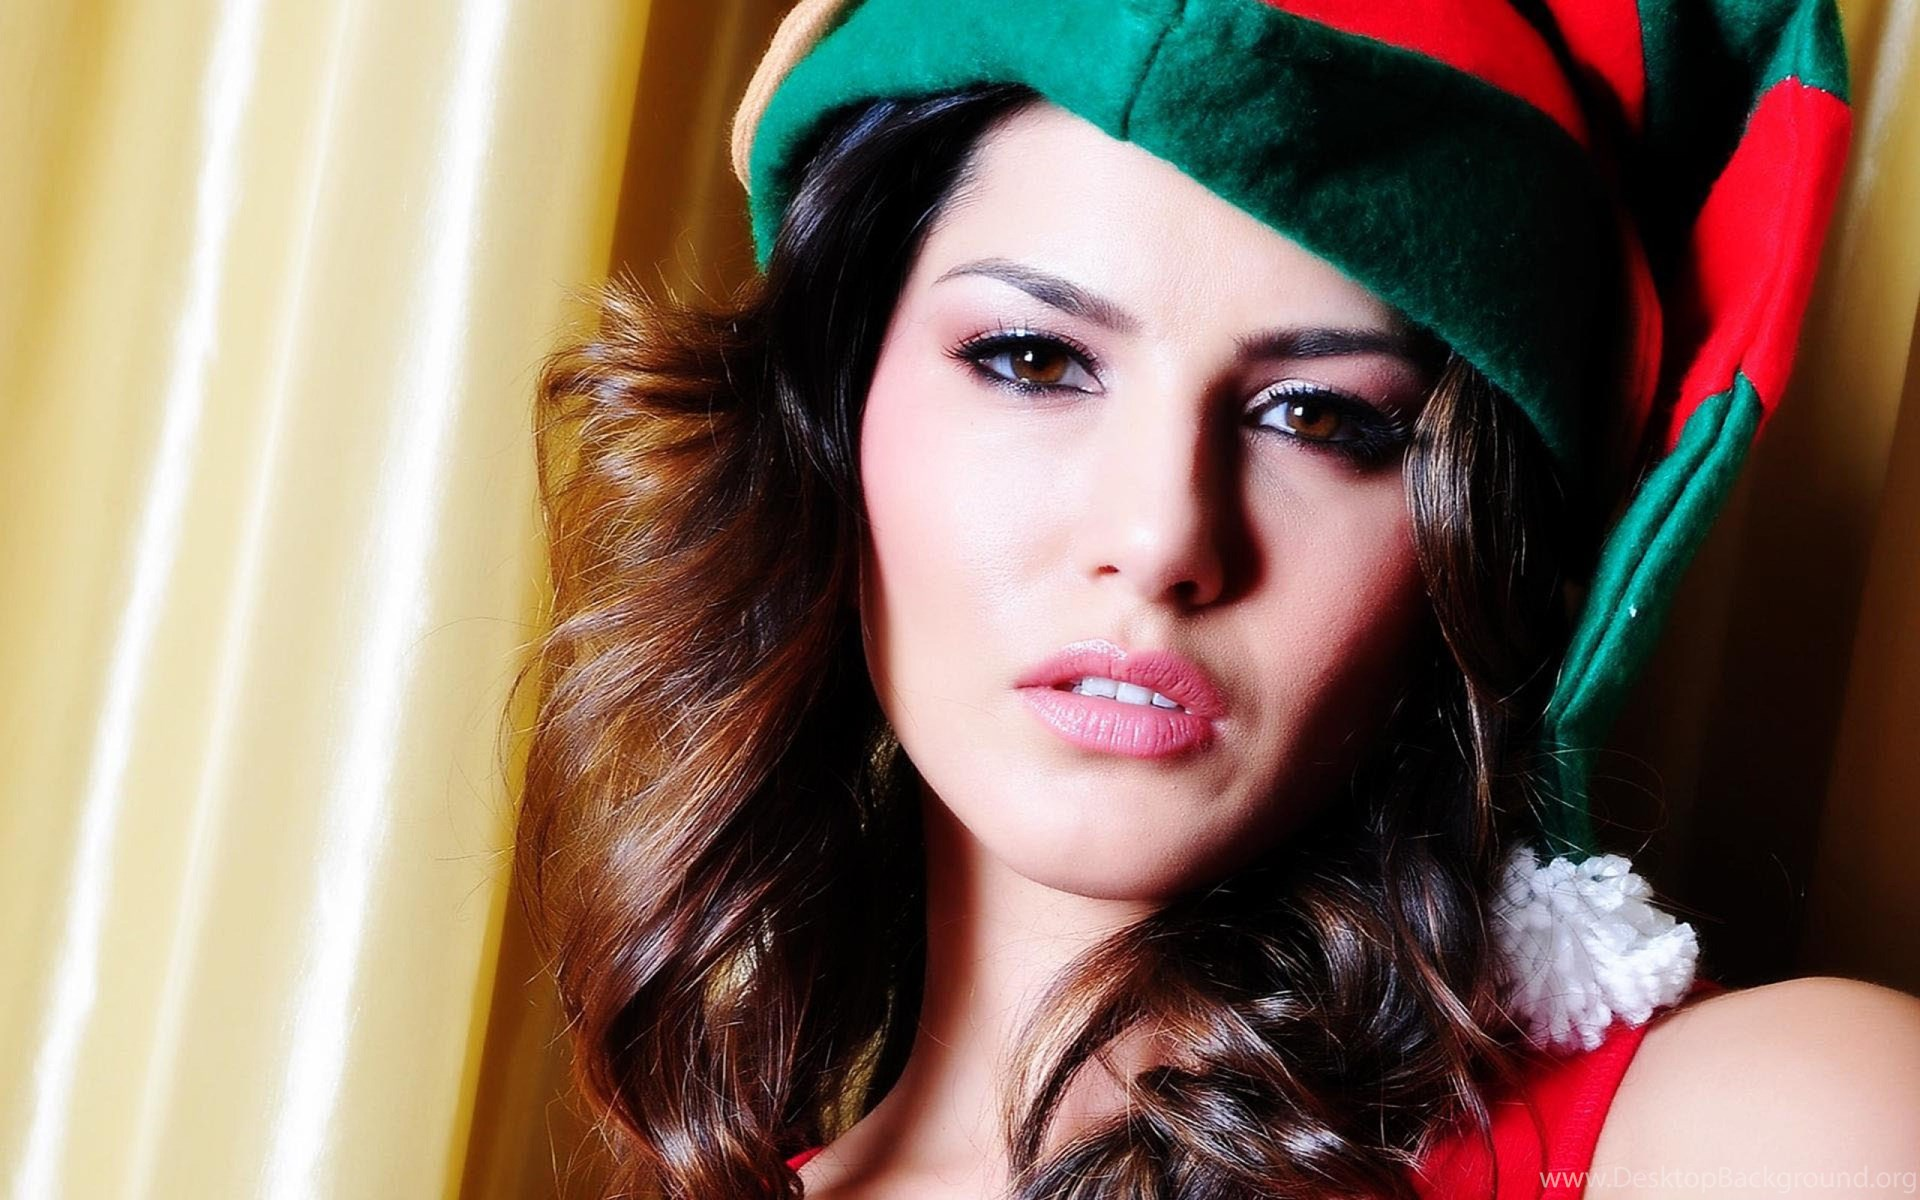 sunny leone hd wallpapers download collection (42+) desktop background